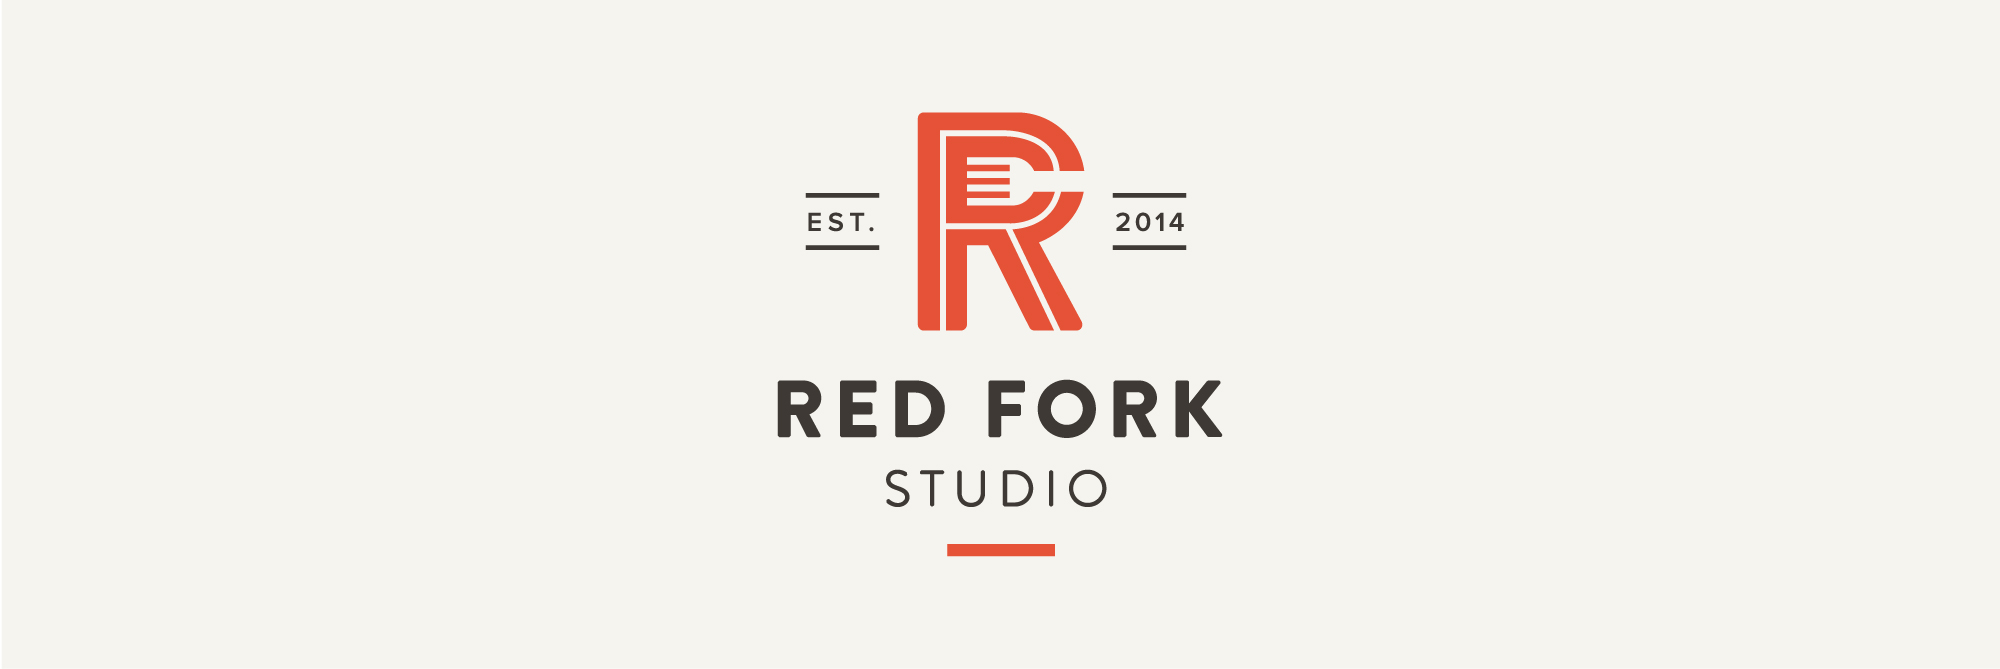 Red Fork Studio by Spruce Rd.